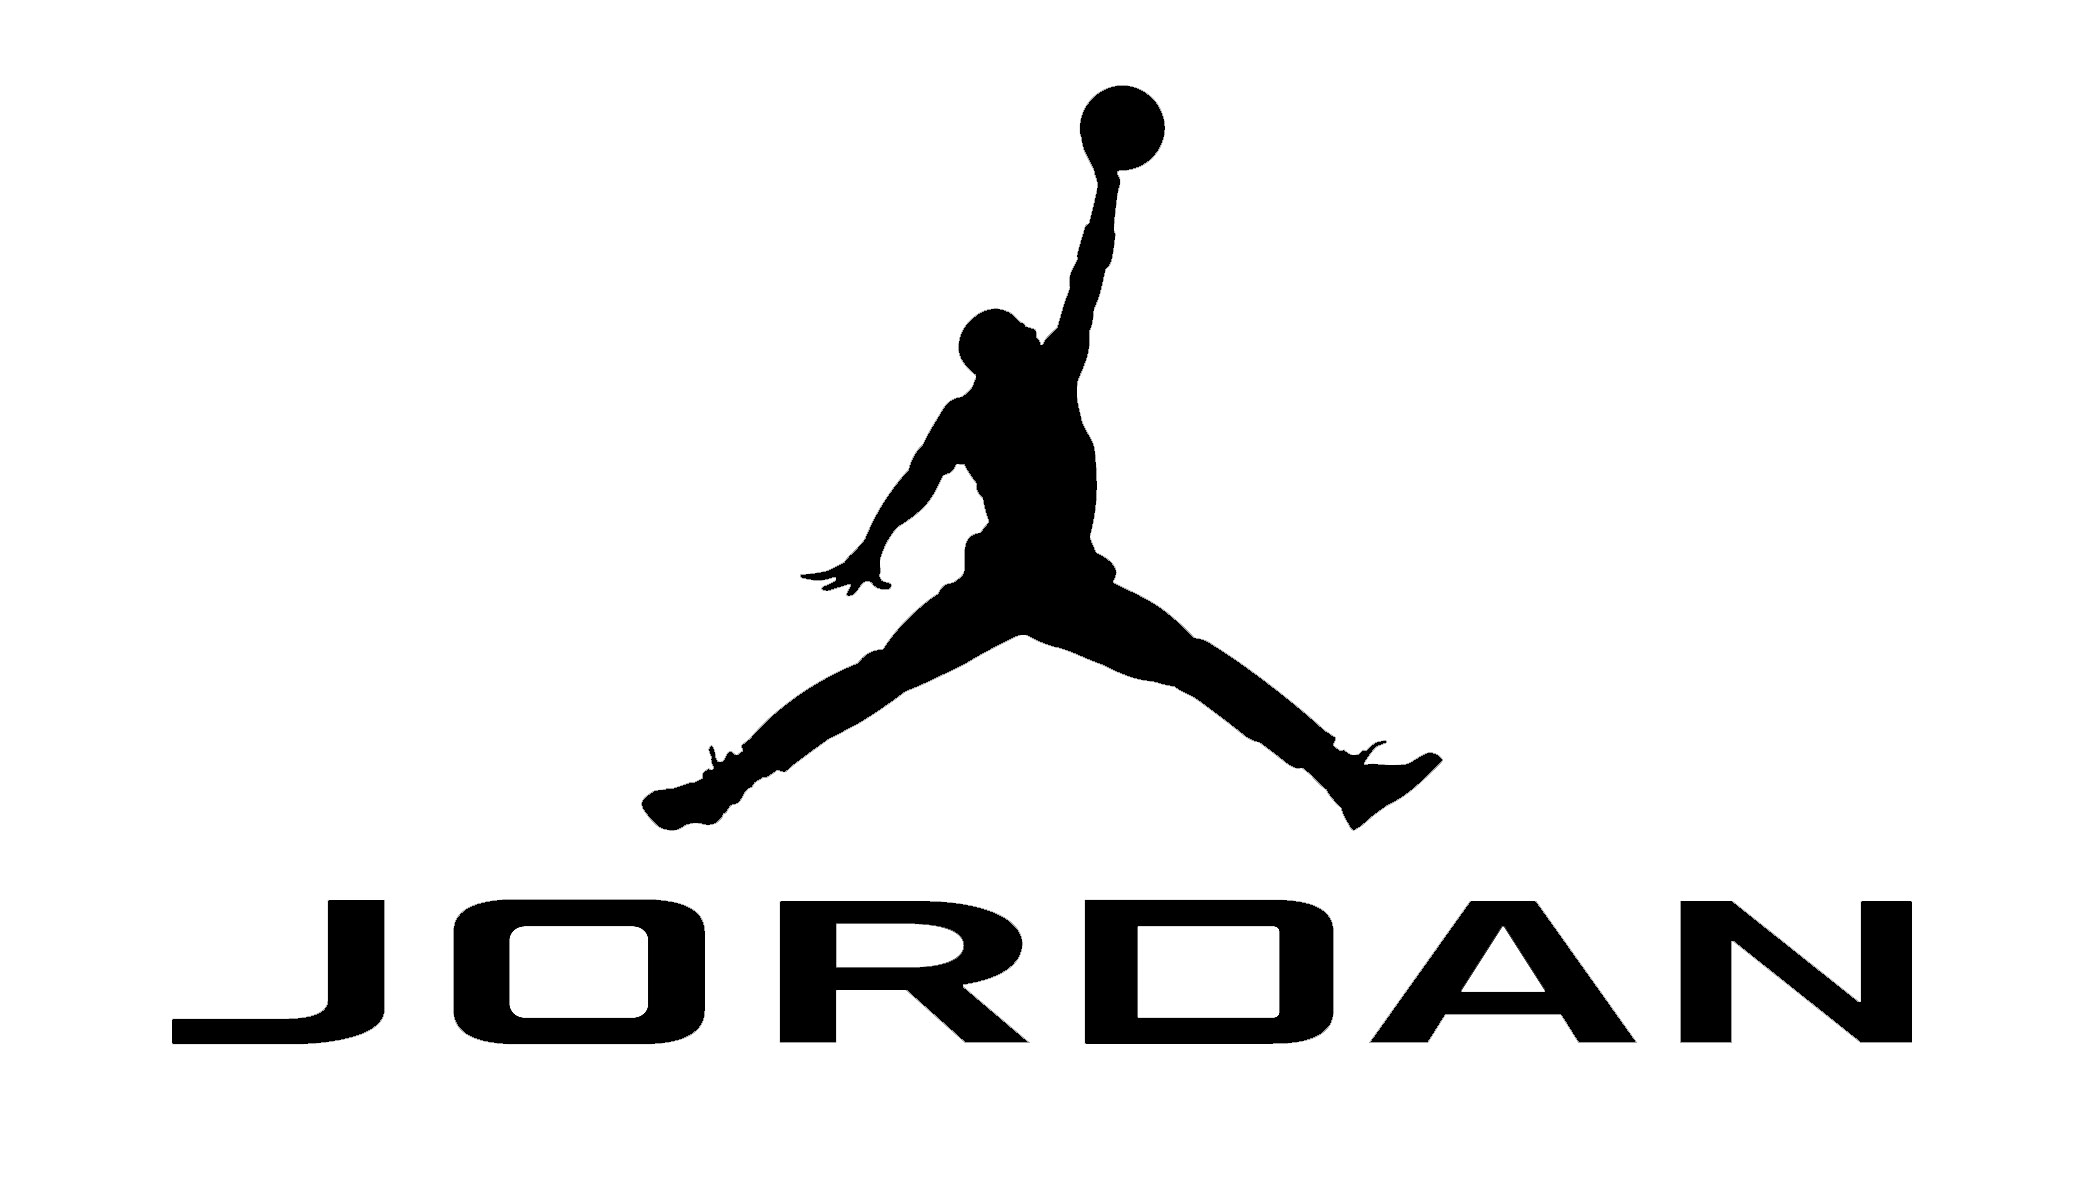 Air Jordan one of the most successful celebrity brands